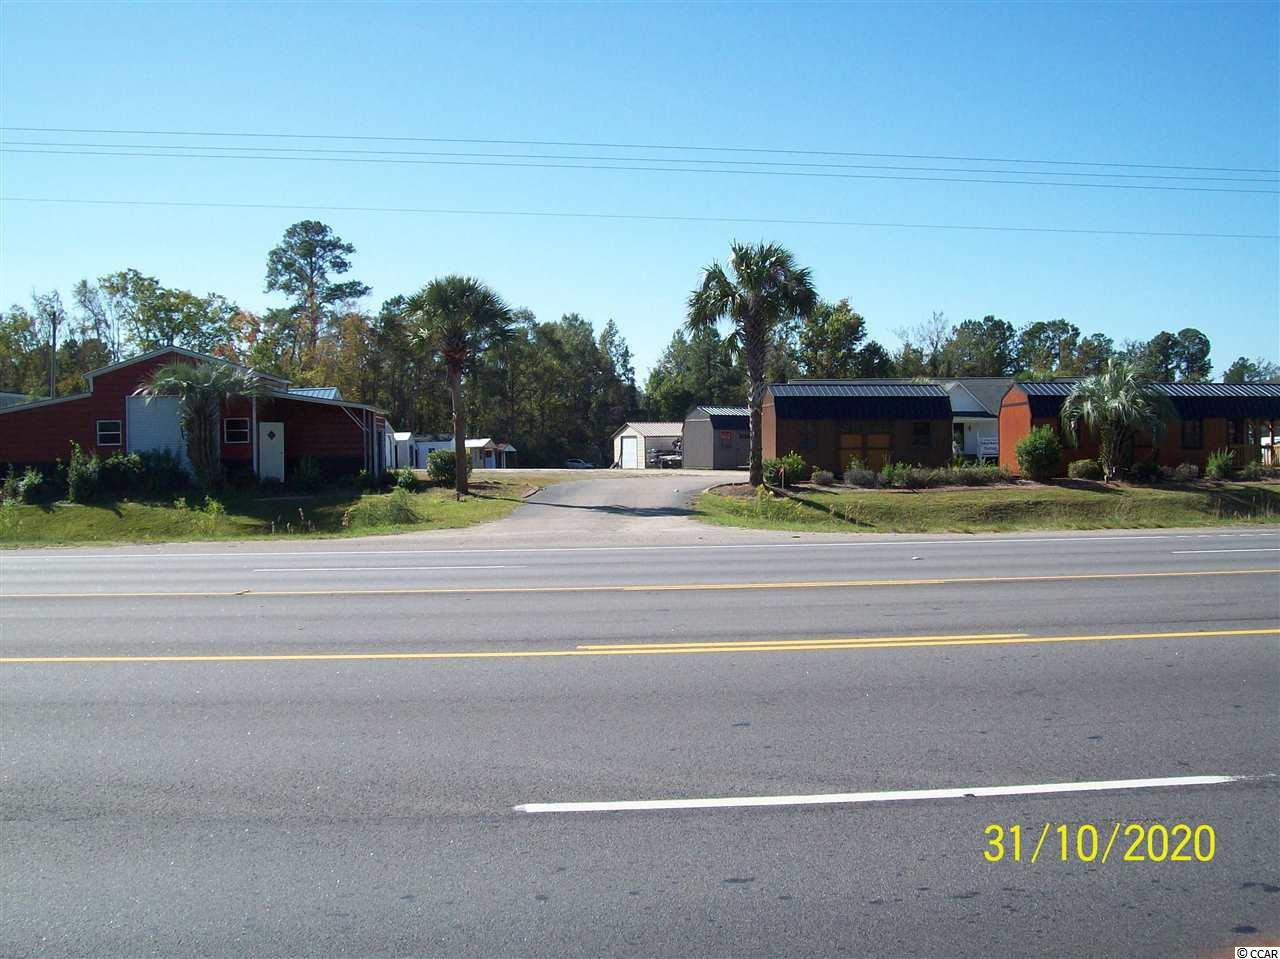 EXCELLENT HIGHWAY 501 FRONTAGE LOT EAST OF CONWAY, HIGHWAY COMMERCIAL ZONED LOT, HAS 100 FT. ON 501, NEW SURVEY PLAT ON FILE, LOT IS HIGH AND DRY, HAS CONWAY WATER AND GRAND STRAND SEWER, BENNETT BUILDINGS IS A MONTH TO MONTH TENANT, GREAT PRICE!!!!!